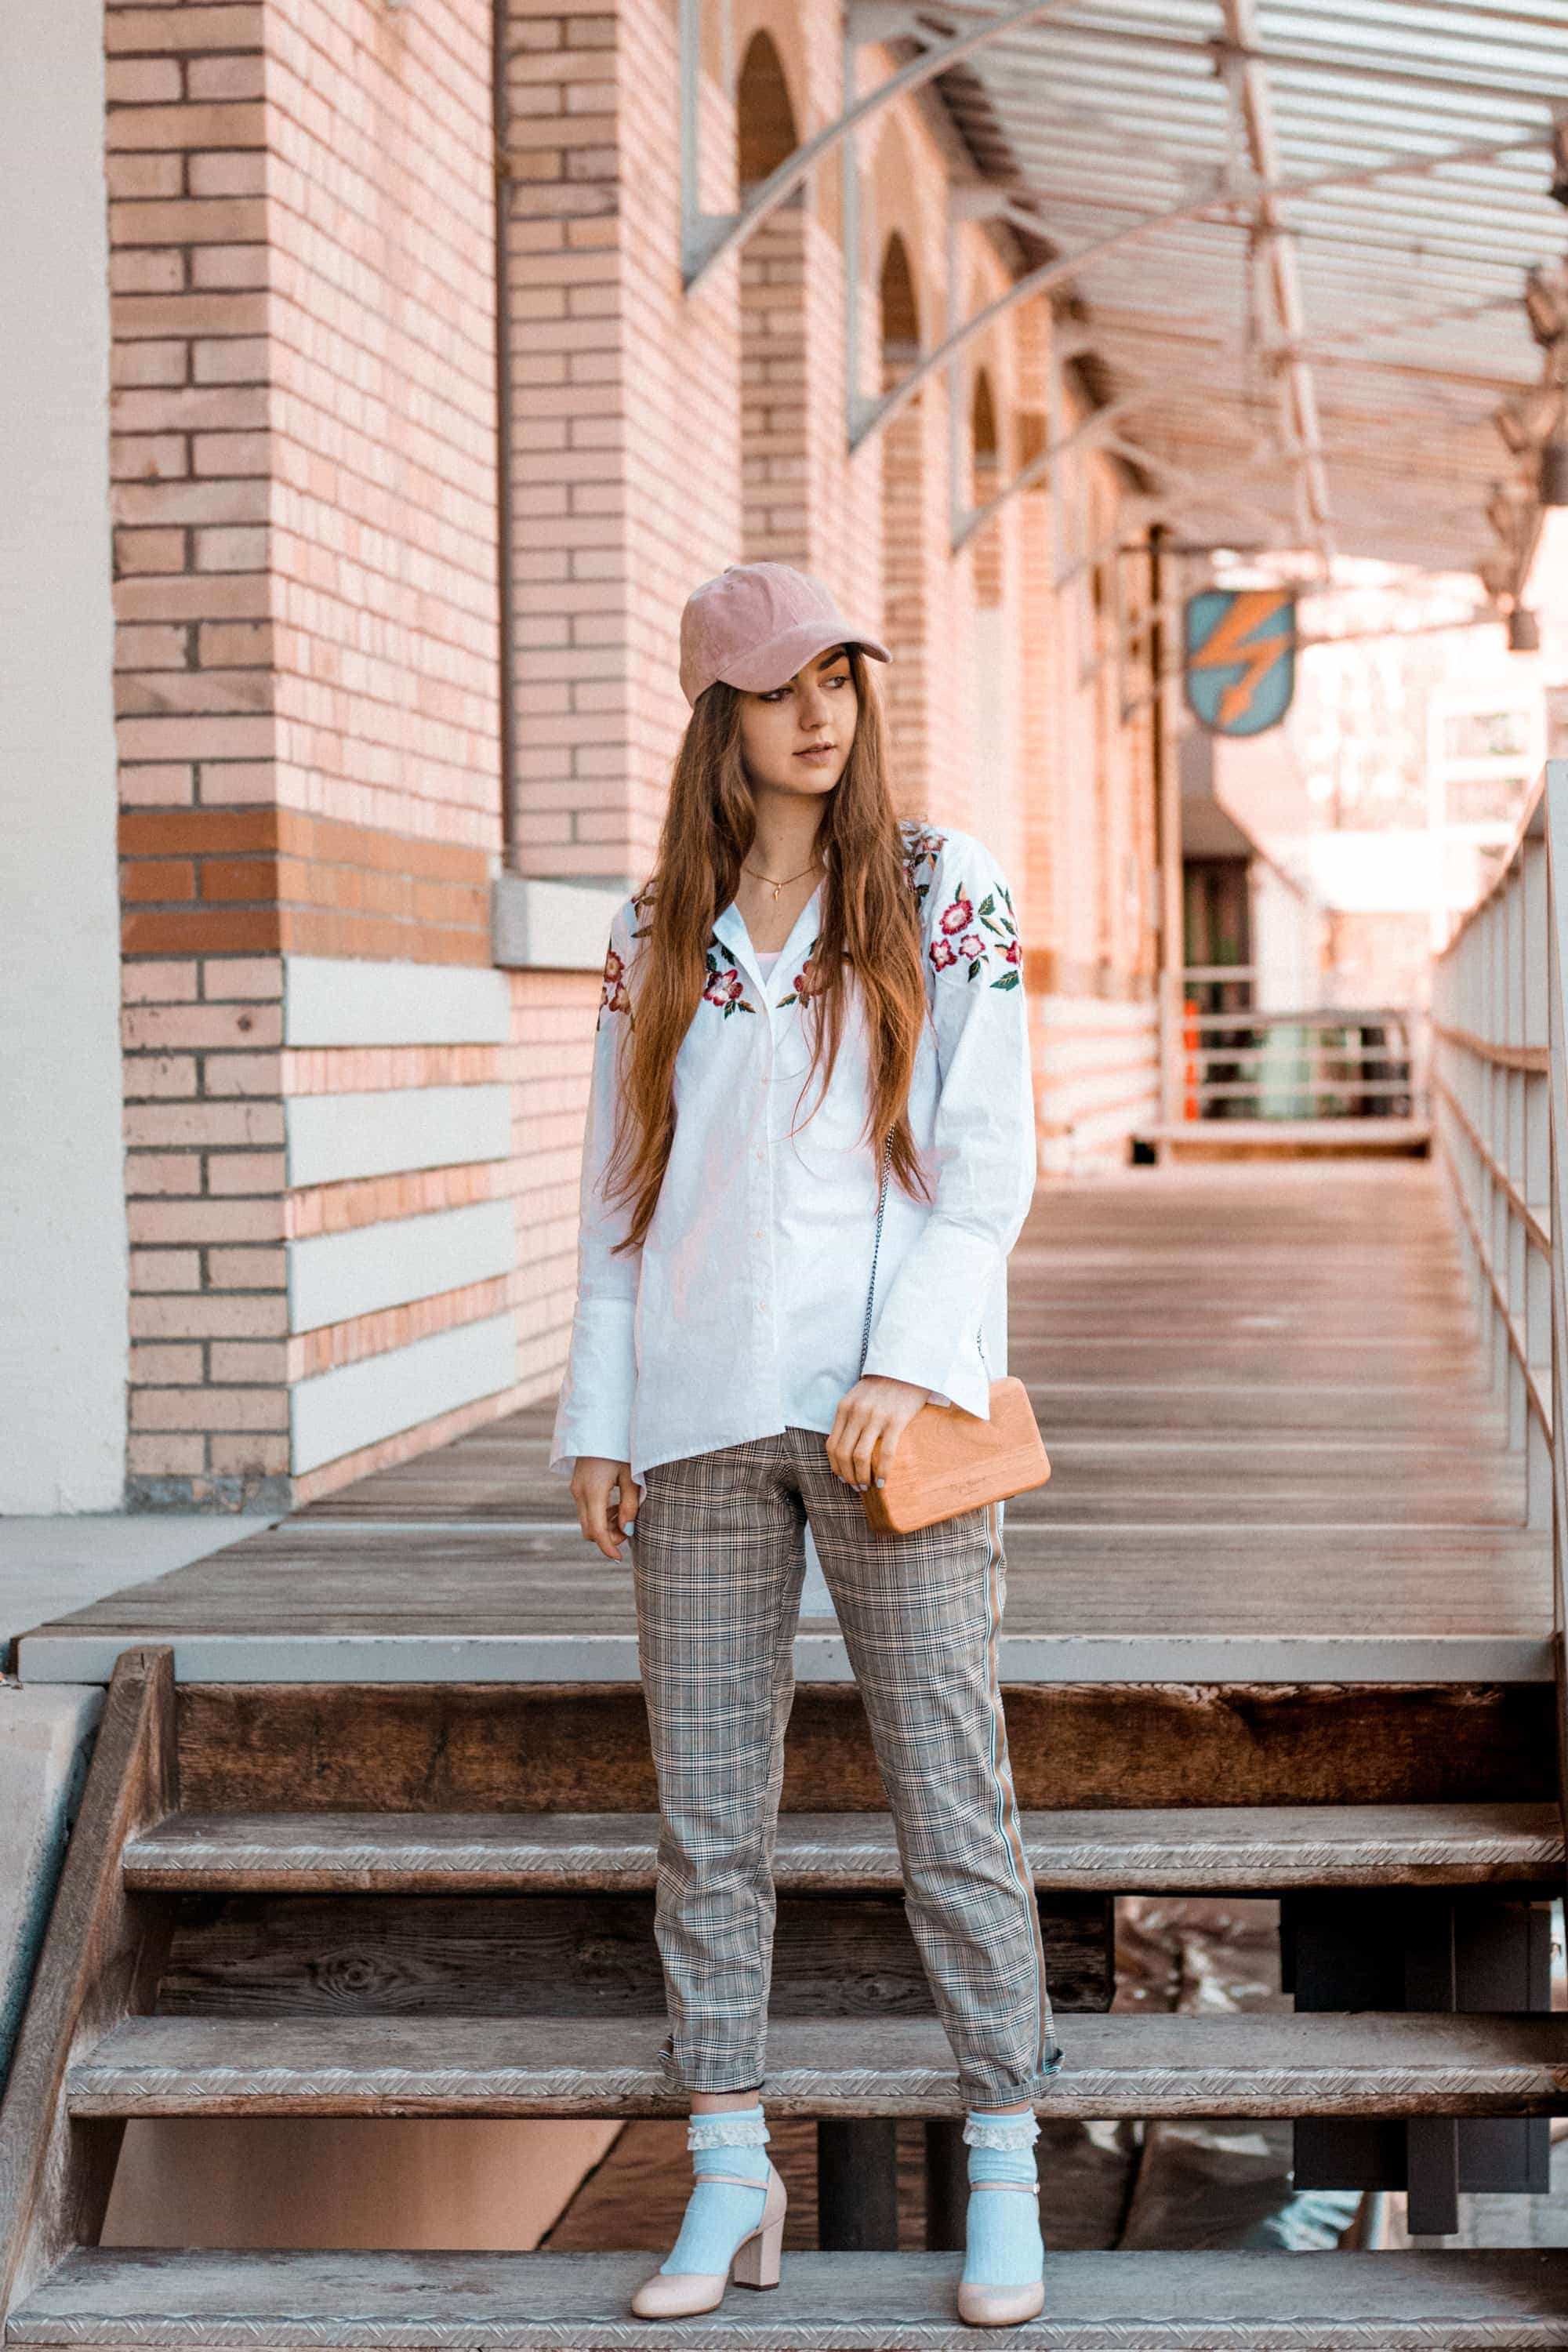 Fashion, Fashionblog, Fashion Magazine, Editorial, Style, Style Guide, Style Inspiration, Streetwear, Street Style, Swiss, Switzerland, Outift, OOTD, Outfit Inspiration, Inspo, Girly, Edgy, Stylish, Trends, Trend, Trendsetter, Carmitive, Carmen Jenny, Embroidery, Baseball Cap, White, Checks, Pink, Socks, Pumps, Collage